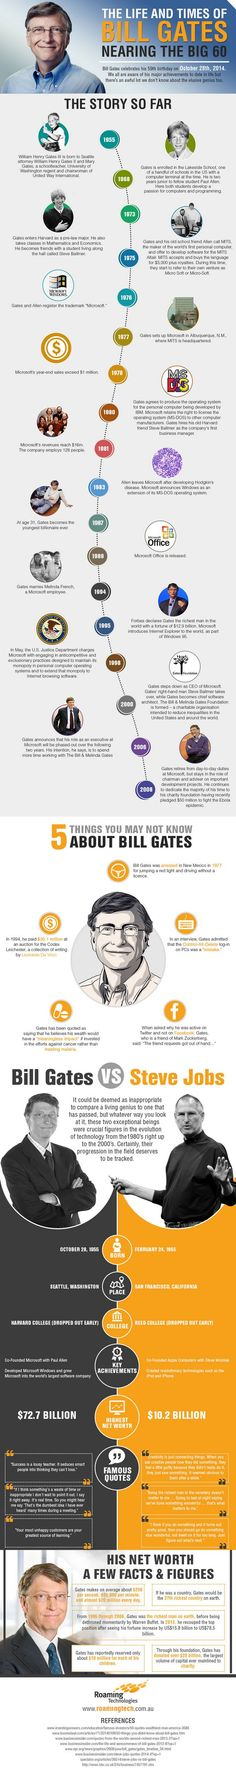 The Life and Times of Bill Gates - Nearing The Big 60 - Bill Gates Celebrates his birthday on October We all aware of his major achievements to date in life but there's an awful lot we don't know about the elusive genius too. Bill Gates Steve Jobs, Value Investing, Timeline Infographic, Social Entrepreneurship, Billionaire Lifestyle, Successful People, Outdoor Travel, Fun Facts, About Me Blog